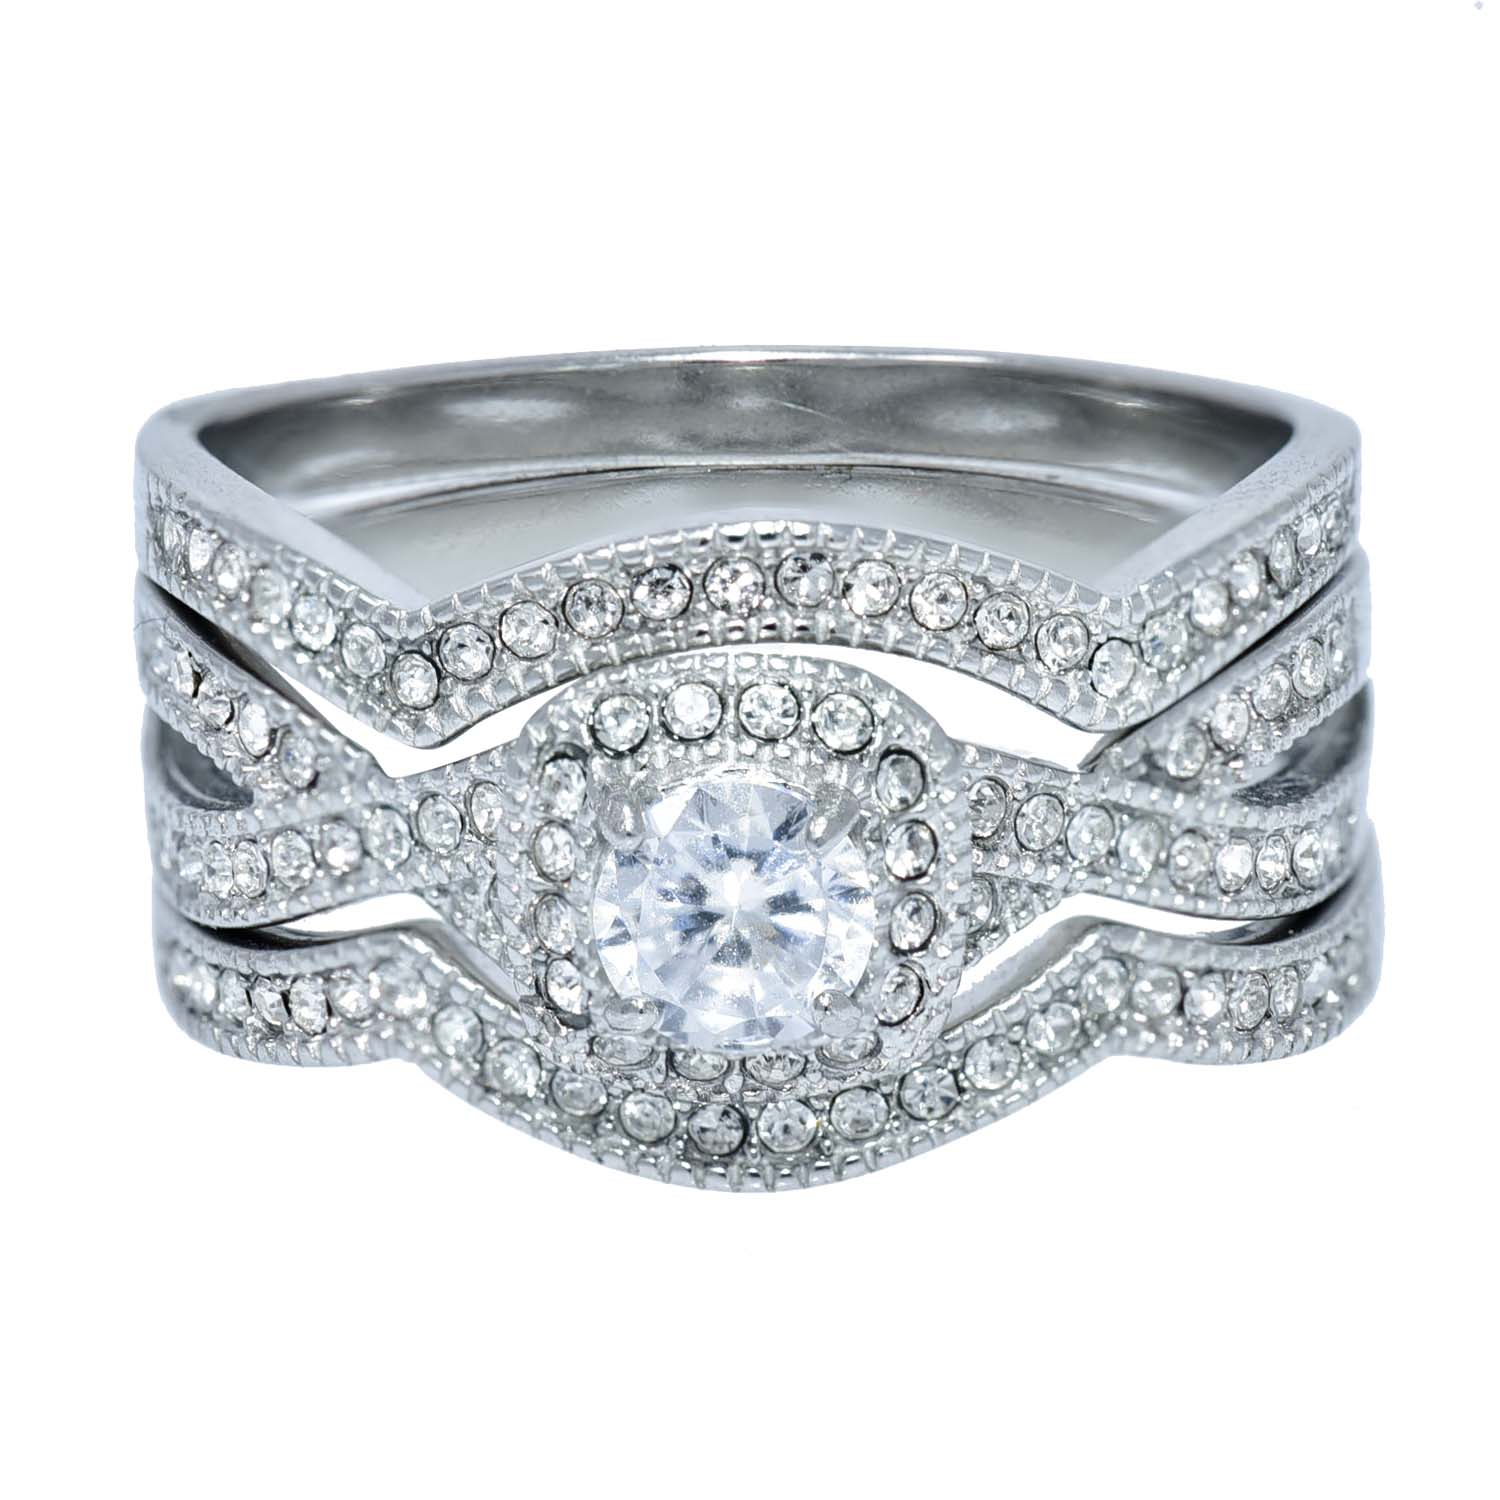 Stainless-Steel-Women-039-s-Infinity-Wedding-Ring-Set-Halo-Round-Cut-Cubic-Zirconia thumbnail 18